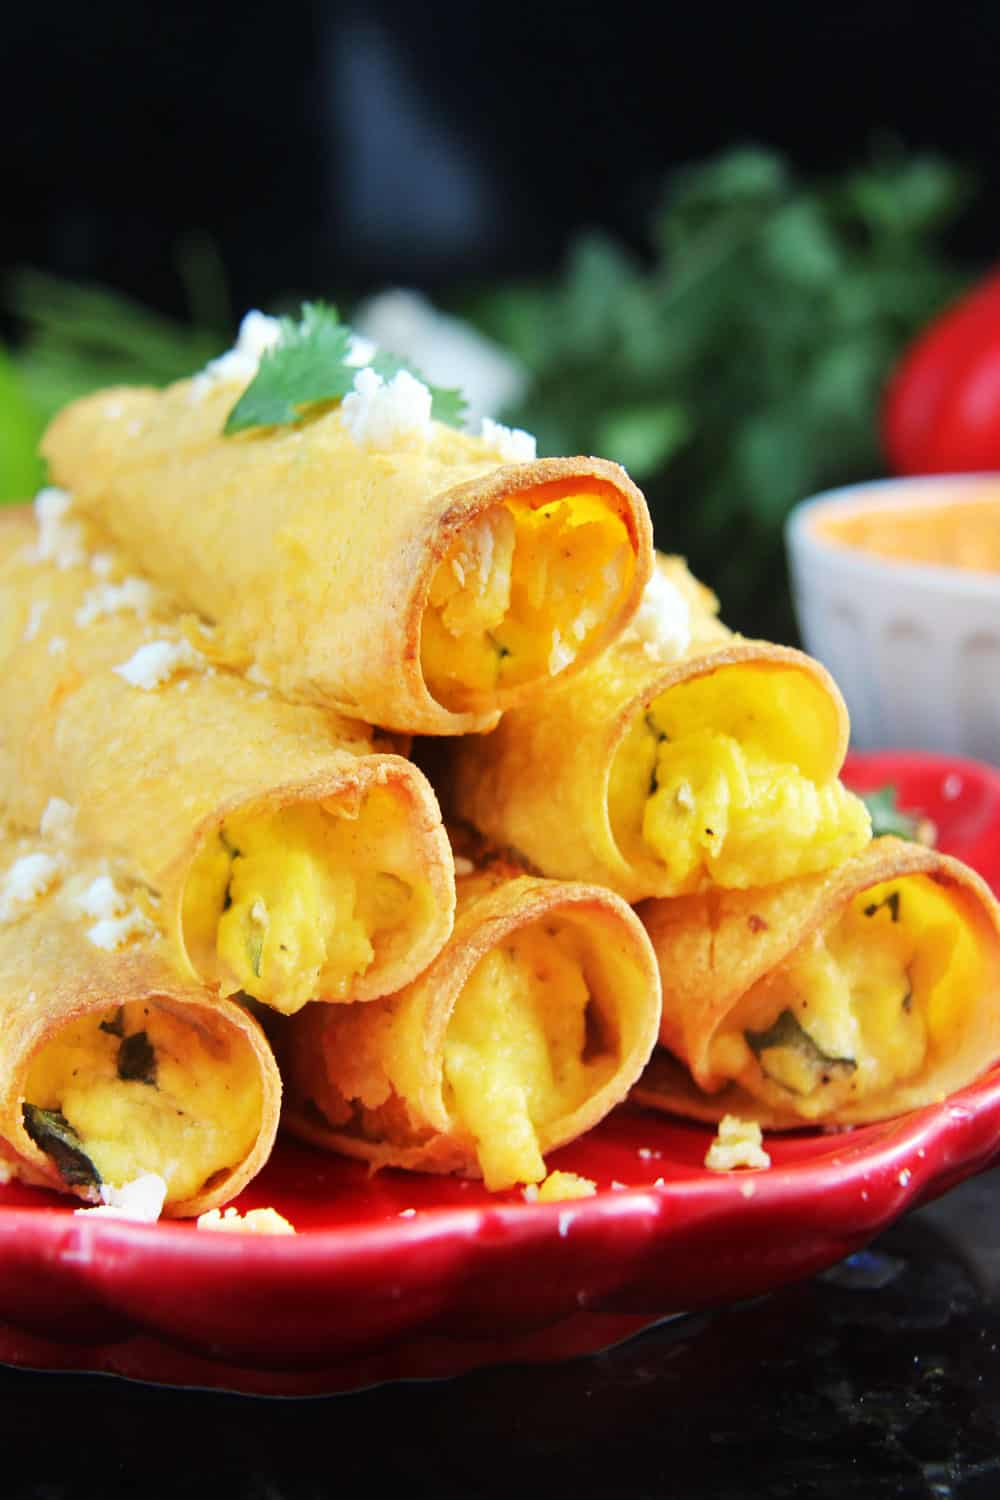 Breakfast Taquitos on a red plate stacked in a pyramid.